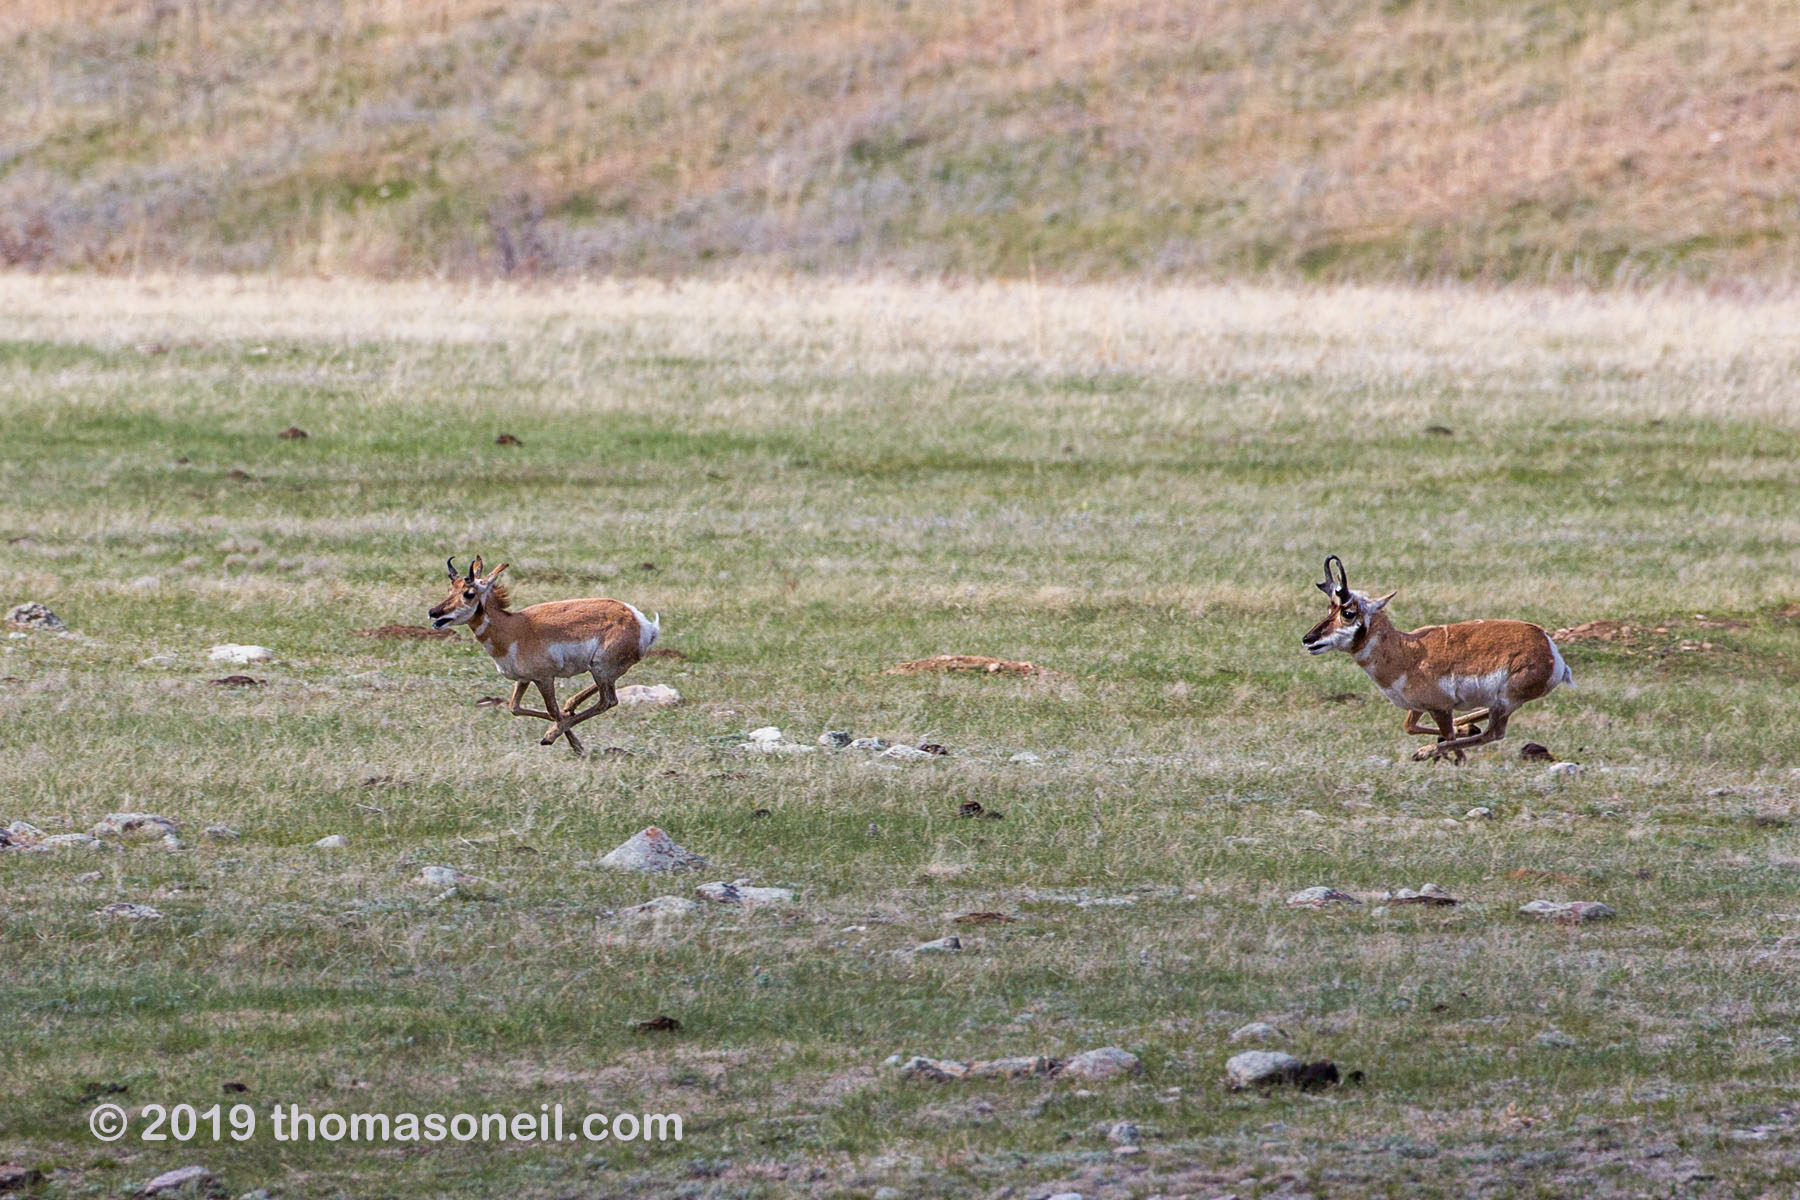 The old pronghorn buck chases a member of its herd, Custer State Park, May 2019.  Click for next photo.